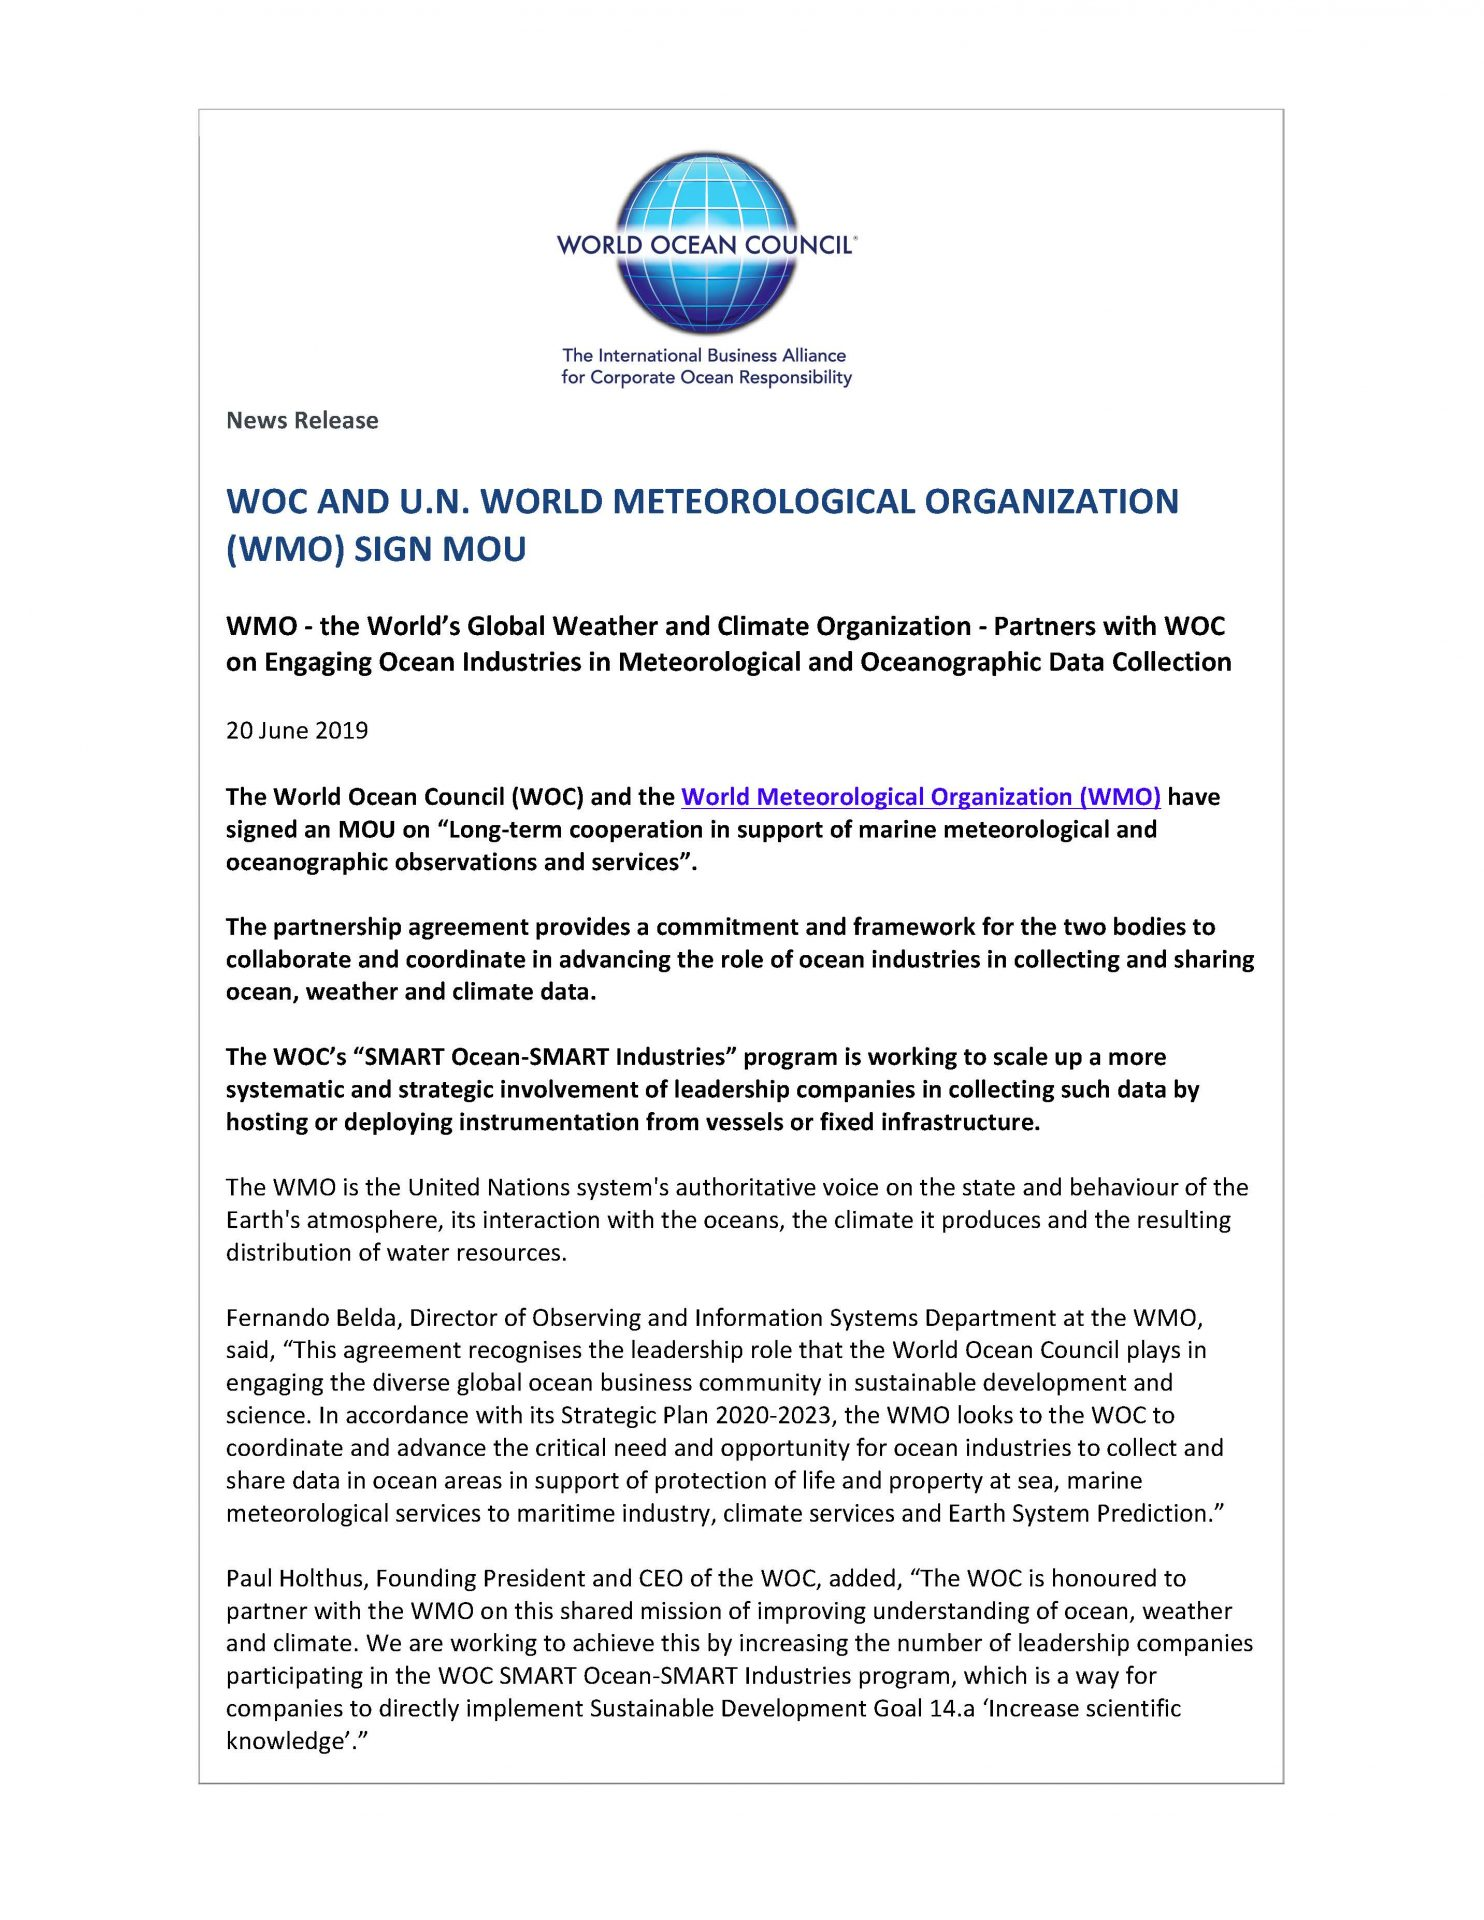 WOC and U.N. World Meteorological Organization Sign MOU - 20 June 2019